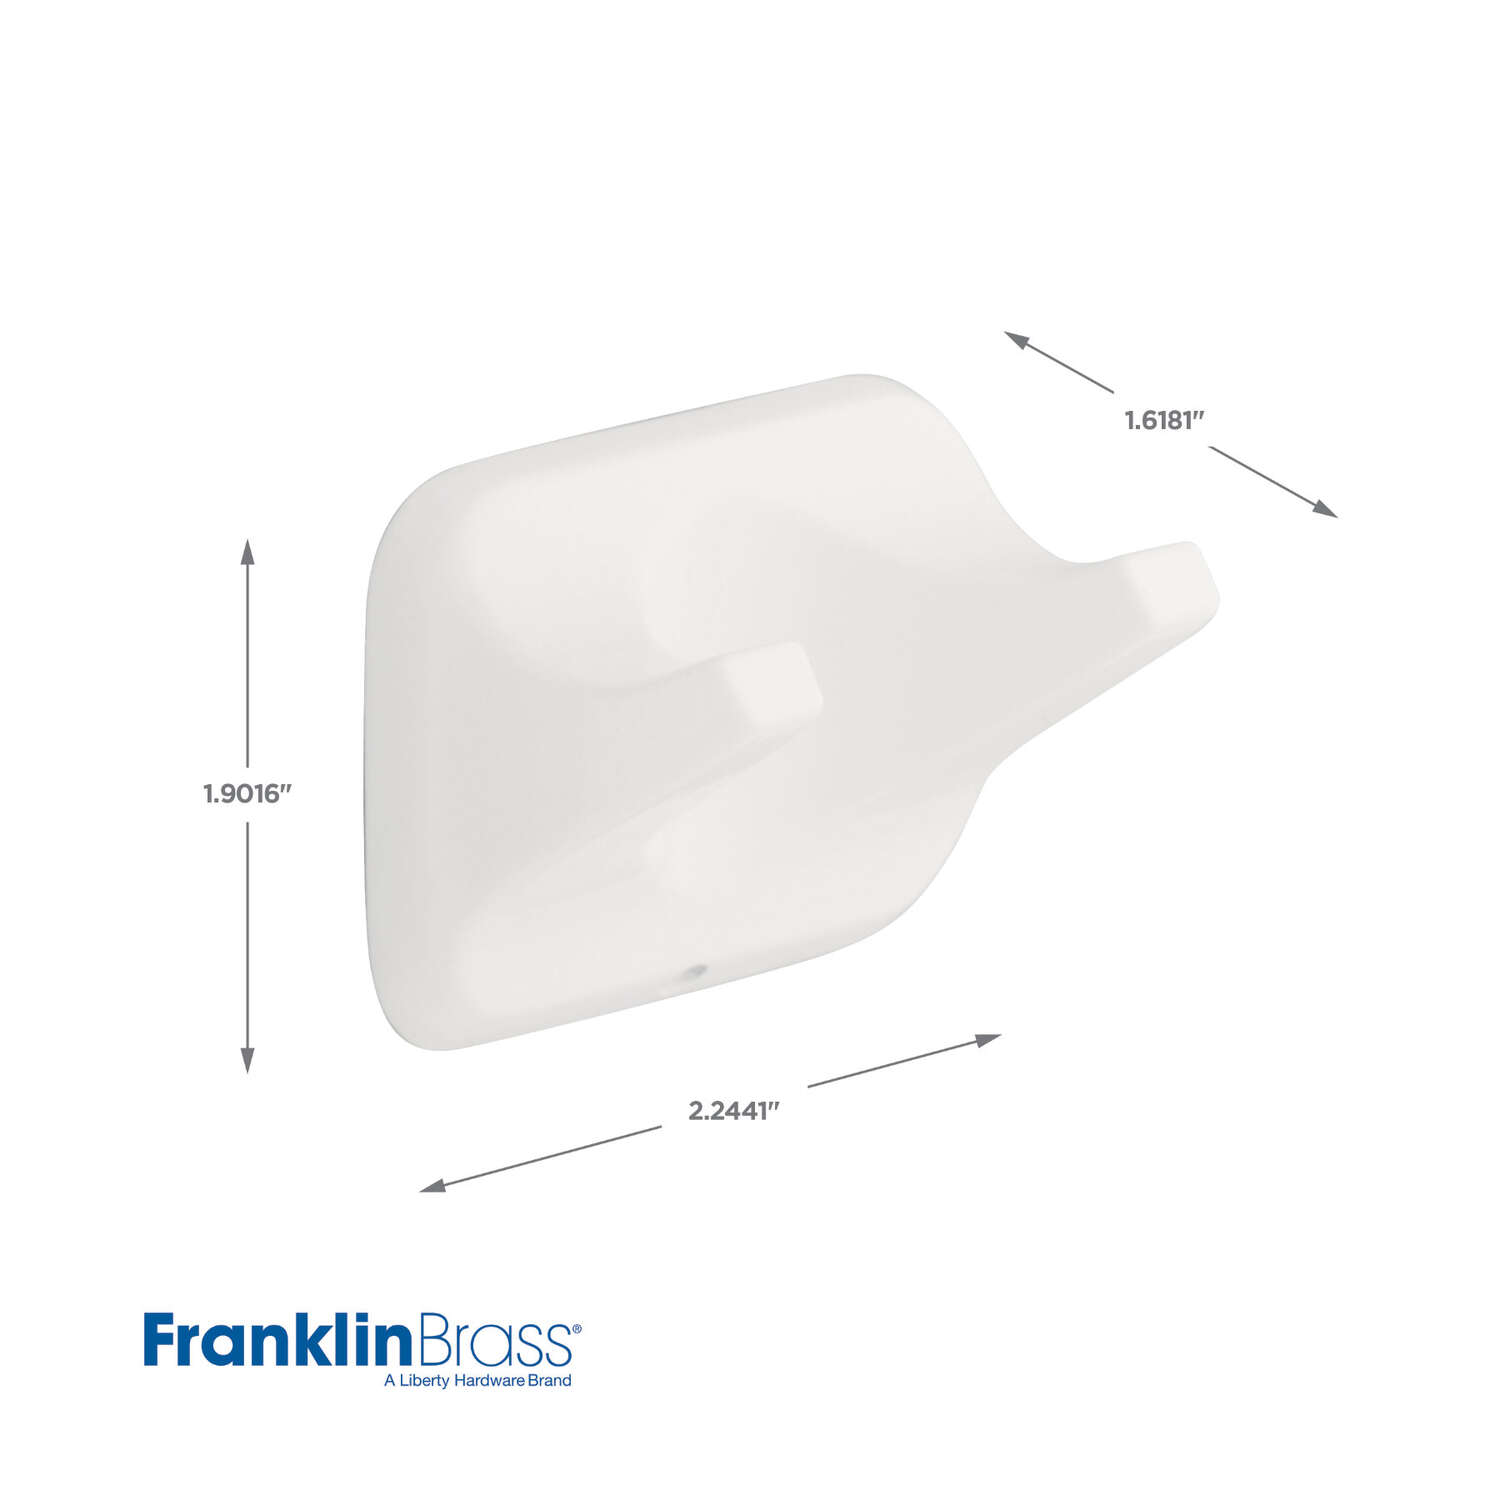 Franklin Brass  Futura  Robe Hook  2.24 in. L x 1.62 in. W x 1.9 in. H Die Cast Zinc  White